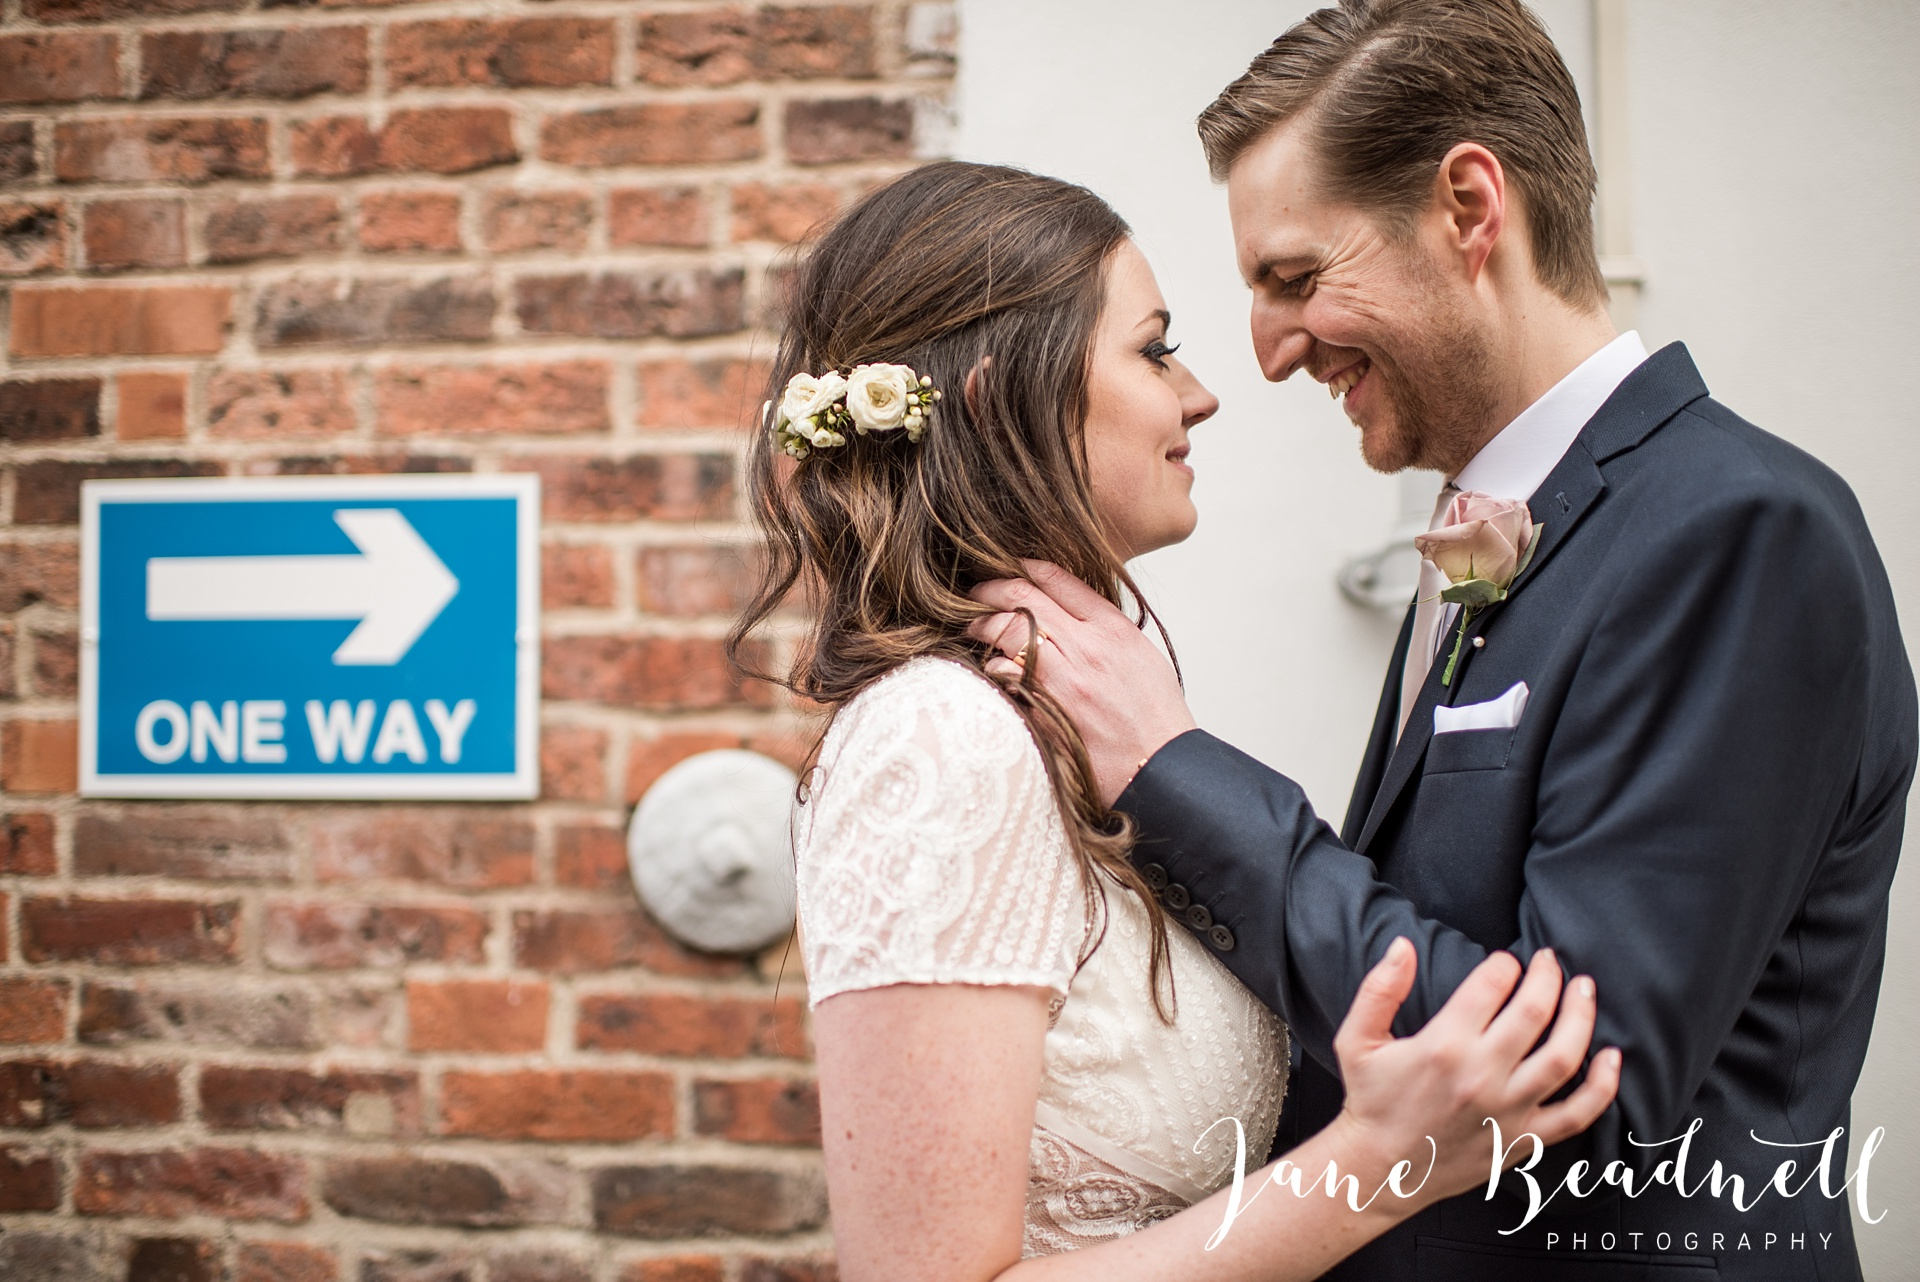 Wedding photography Cross Keys Leeds Wedding Jane Beadnell Photography_0116